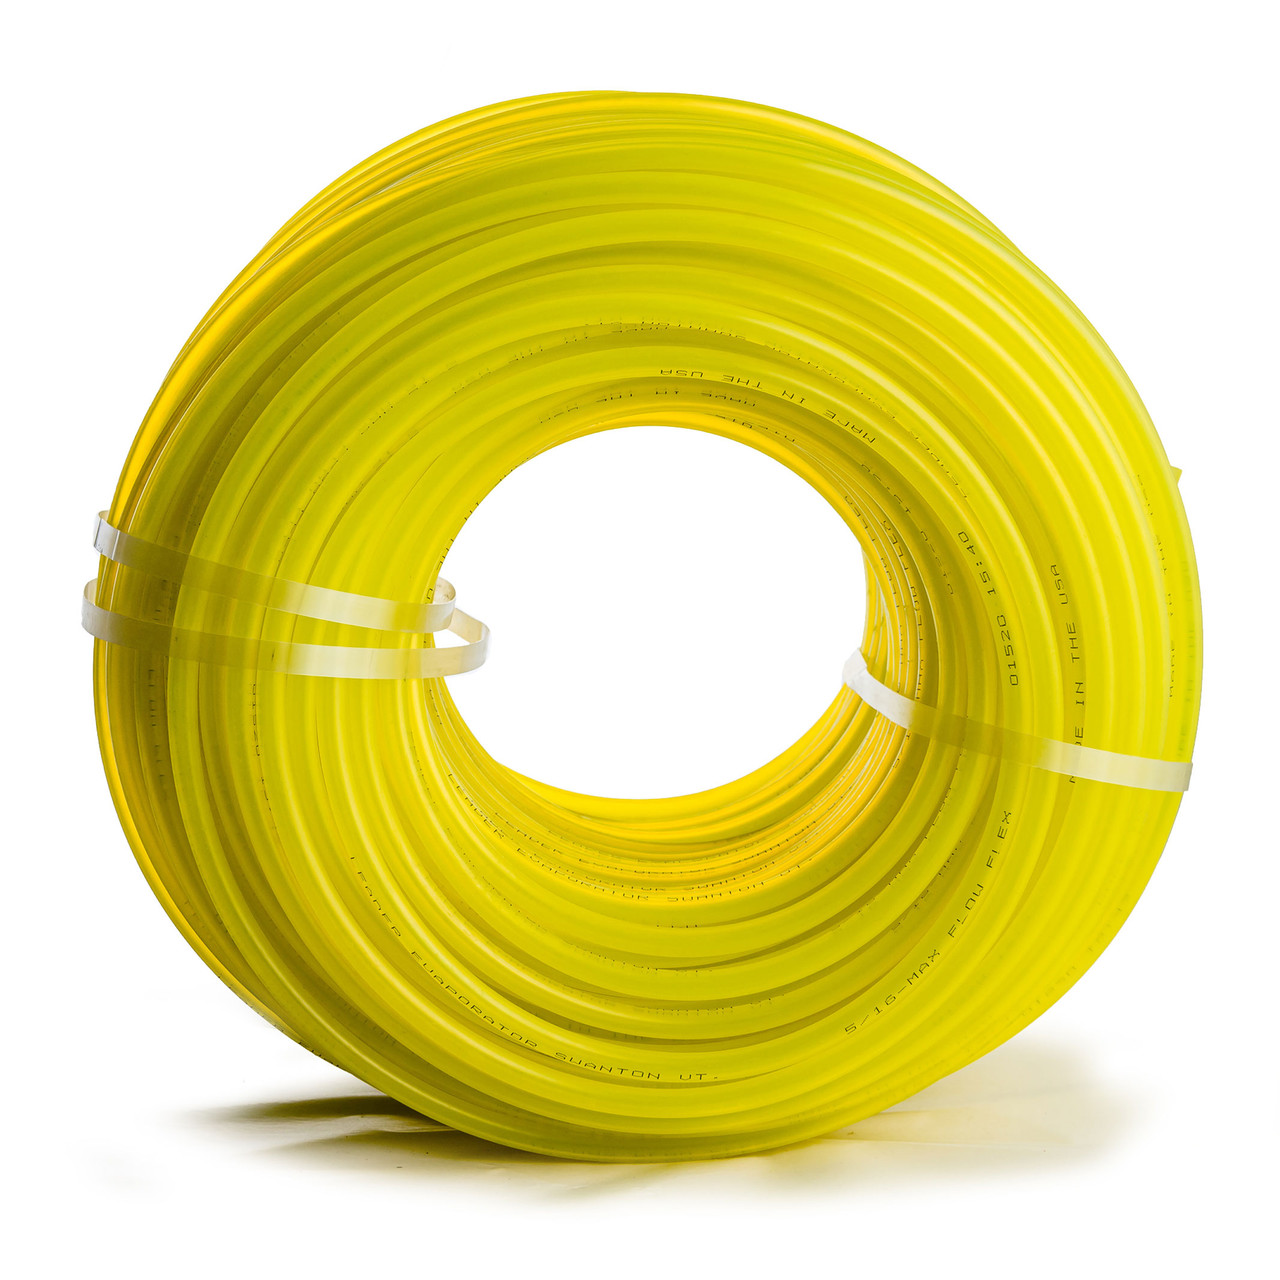 "Leader 5/16"" Yellow Max Flow Flex Tubing"